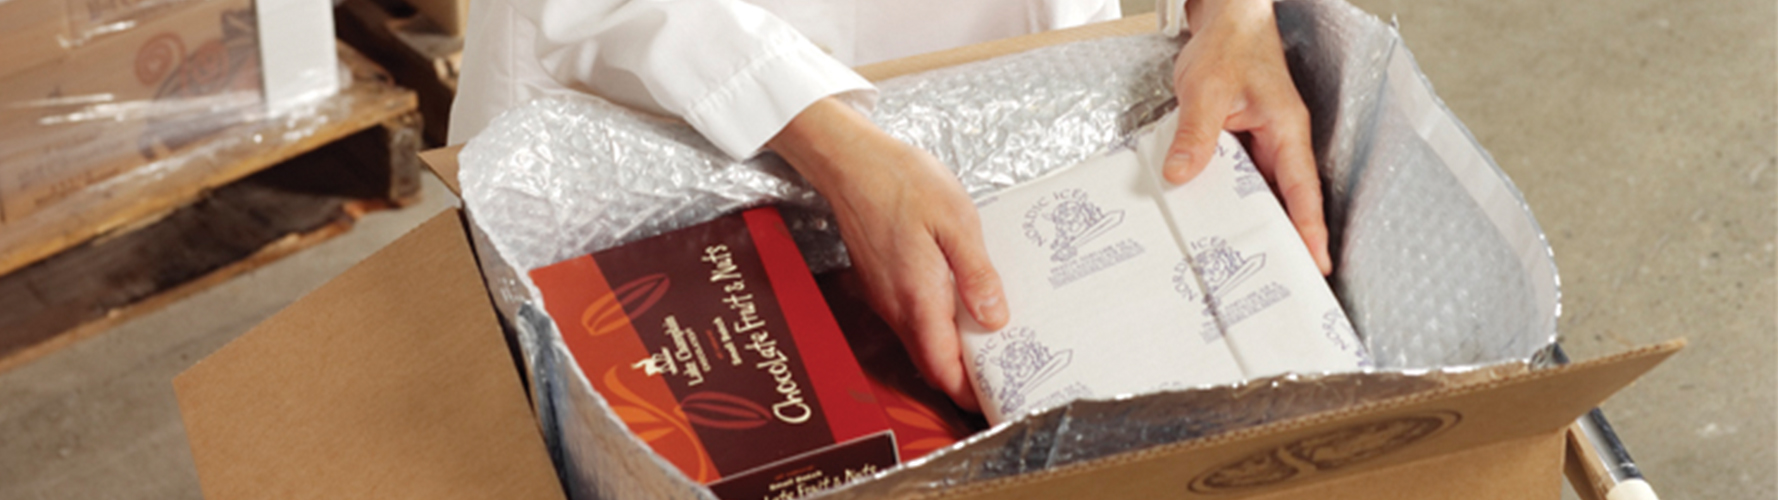 Carefully hand-packing each box ensure delivery of only the highest quality chocolate.